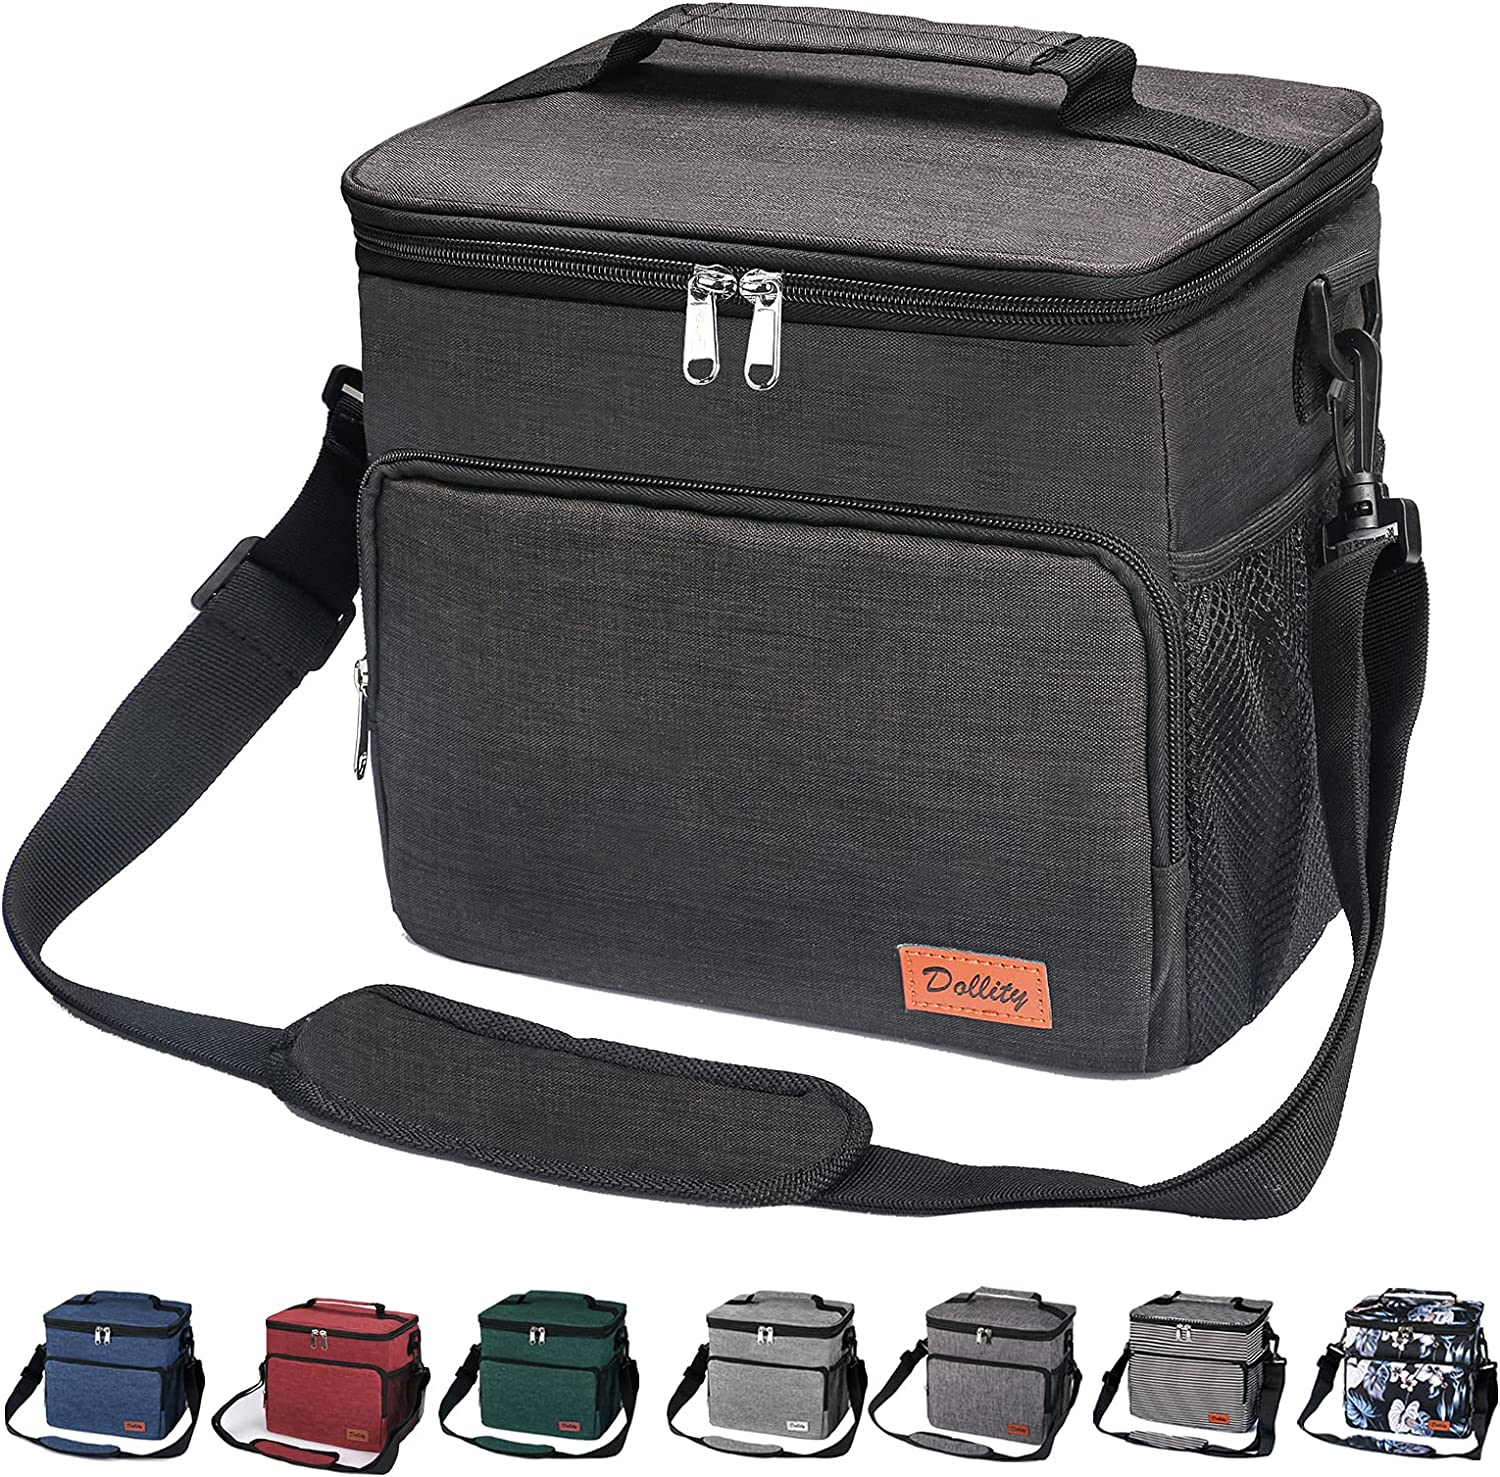 Insulated Lunch Bag for Men Women - Reusable Lunch Box for Work School Office Picnic Hiking - Leakproof Reusable Tote Cooler Bags for Kids Adult